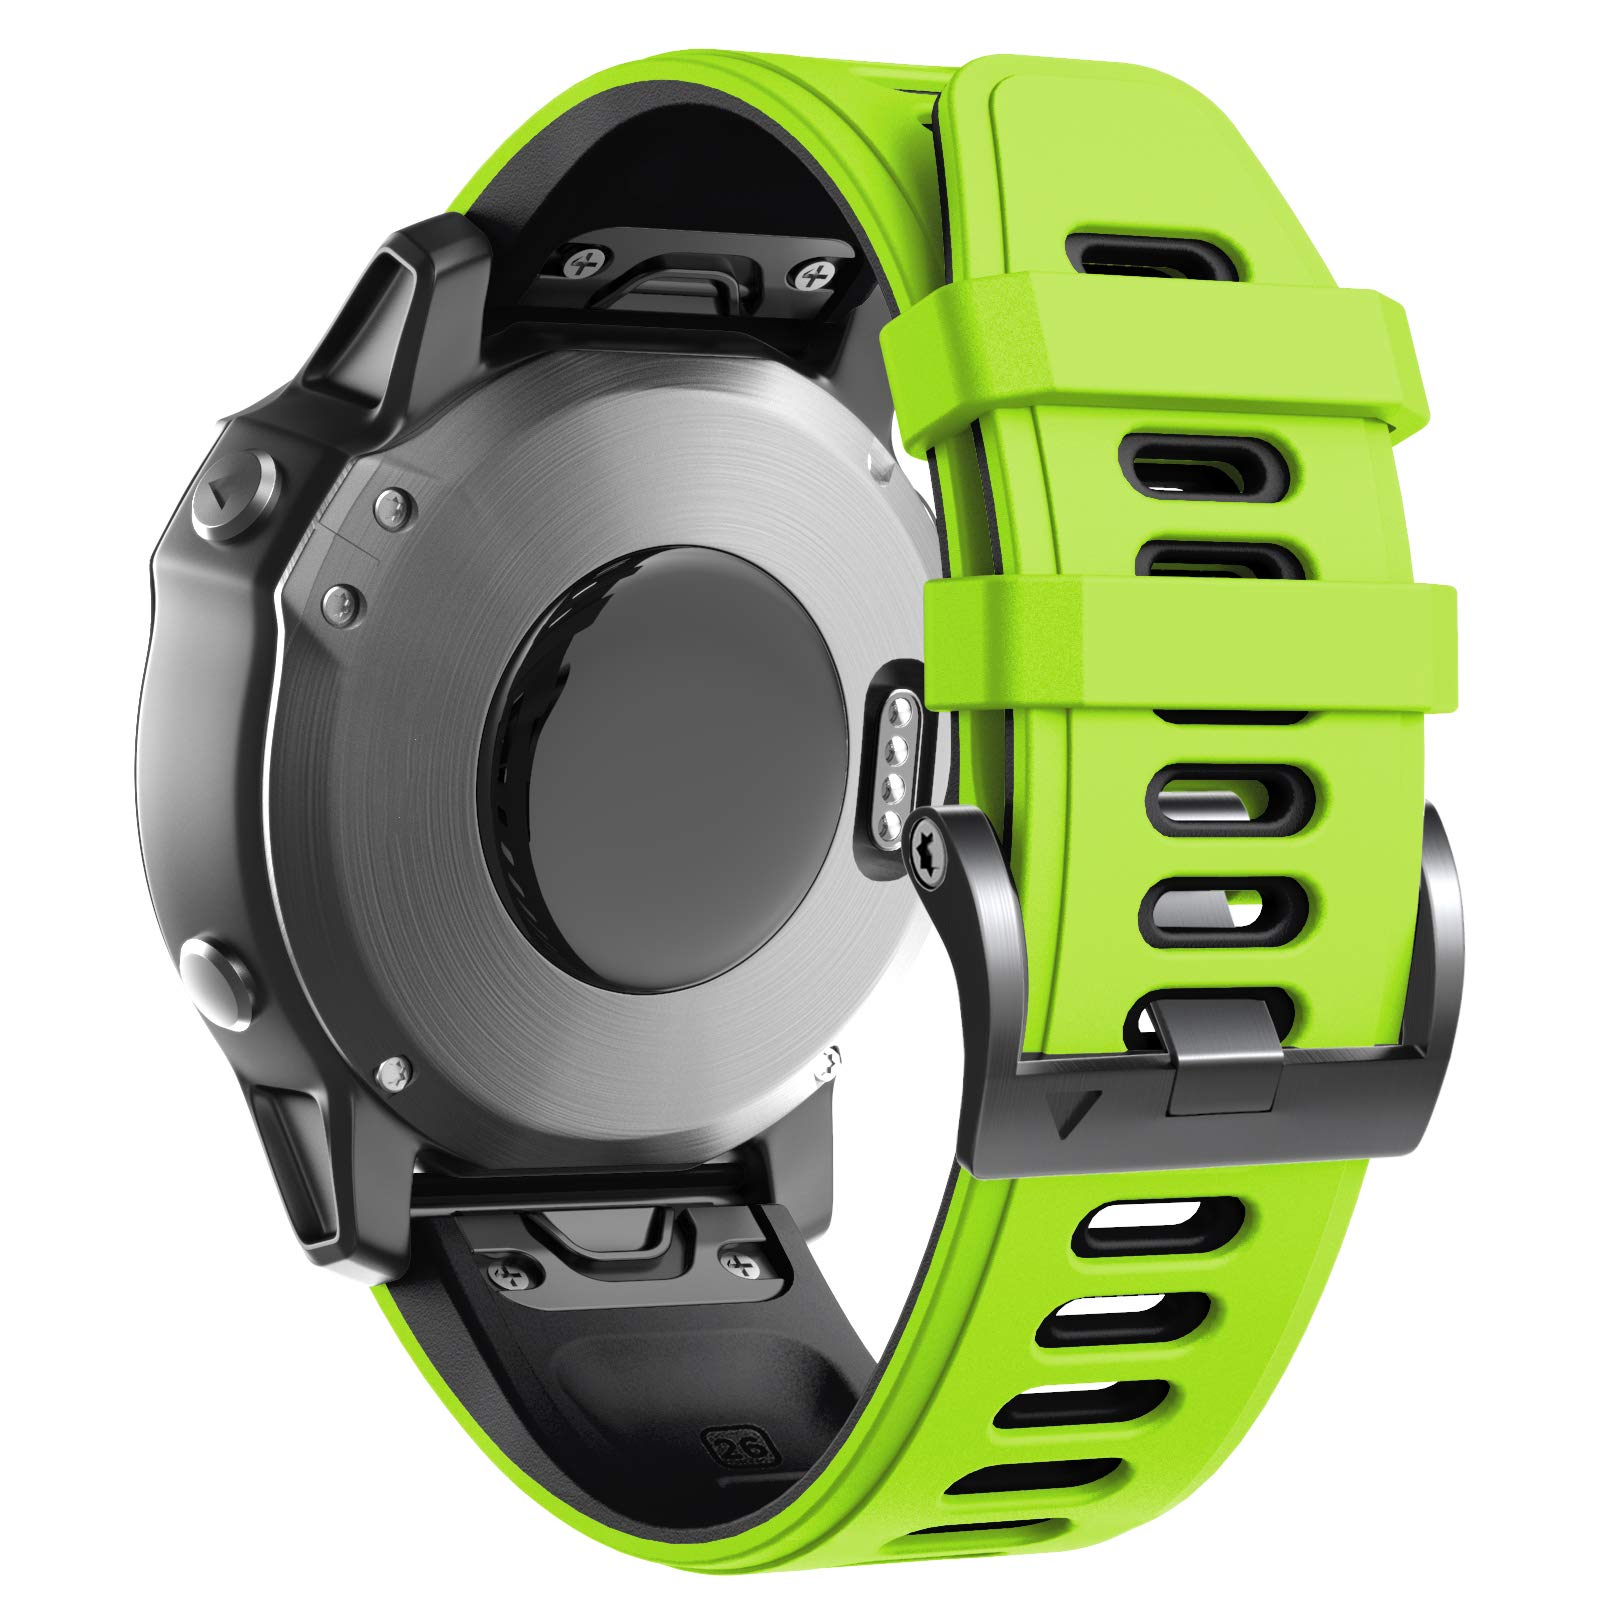 ANCOOL Compatible with Fenix 6X Bands Soft Watch Straps Sport Bands Replacement for Fenix 6X Pro/Fenix 5X/Fenix 5X Plus/Fenix 3 Smartwatches, Green-Black